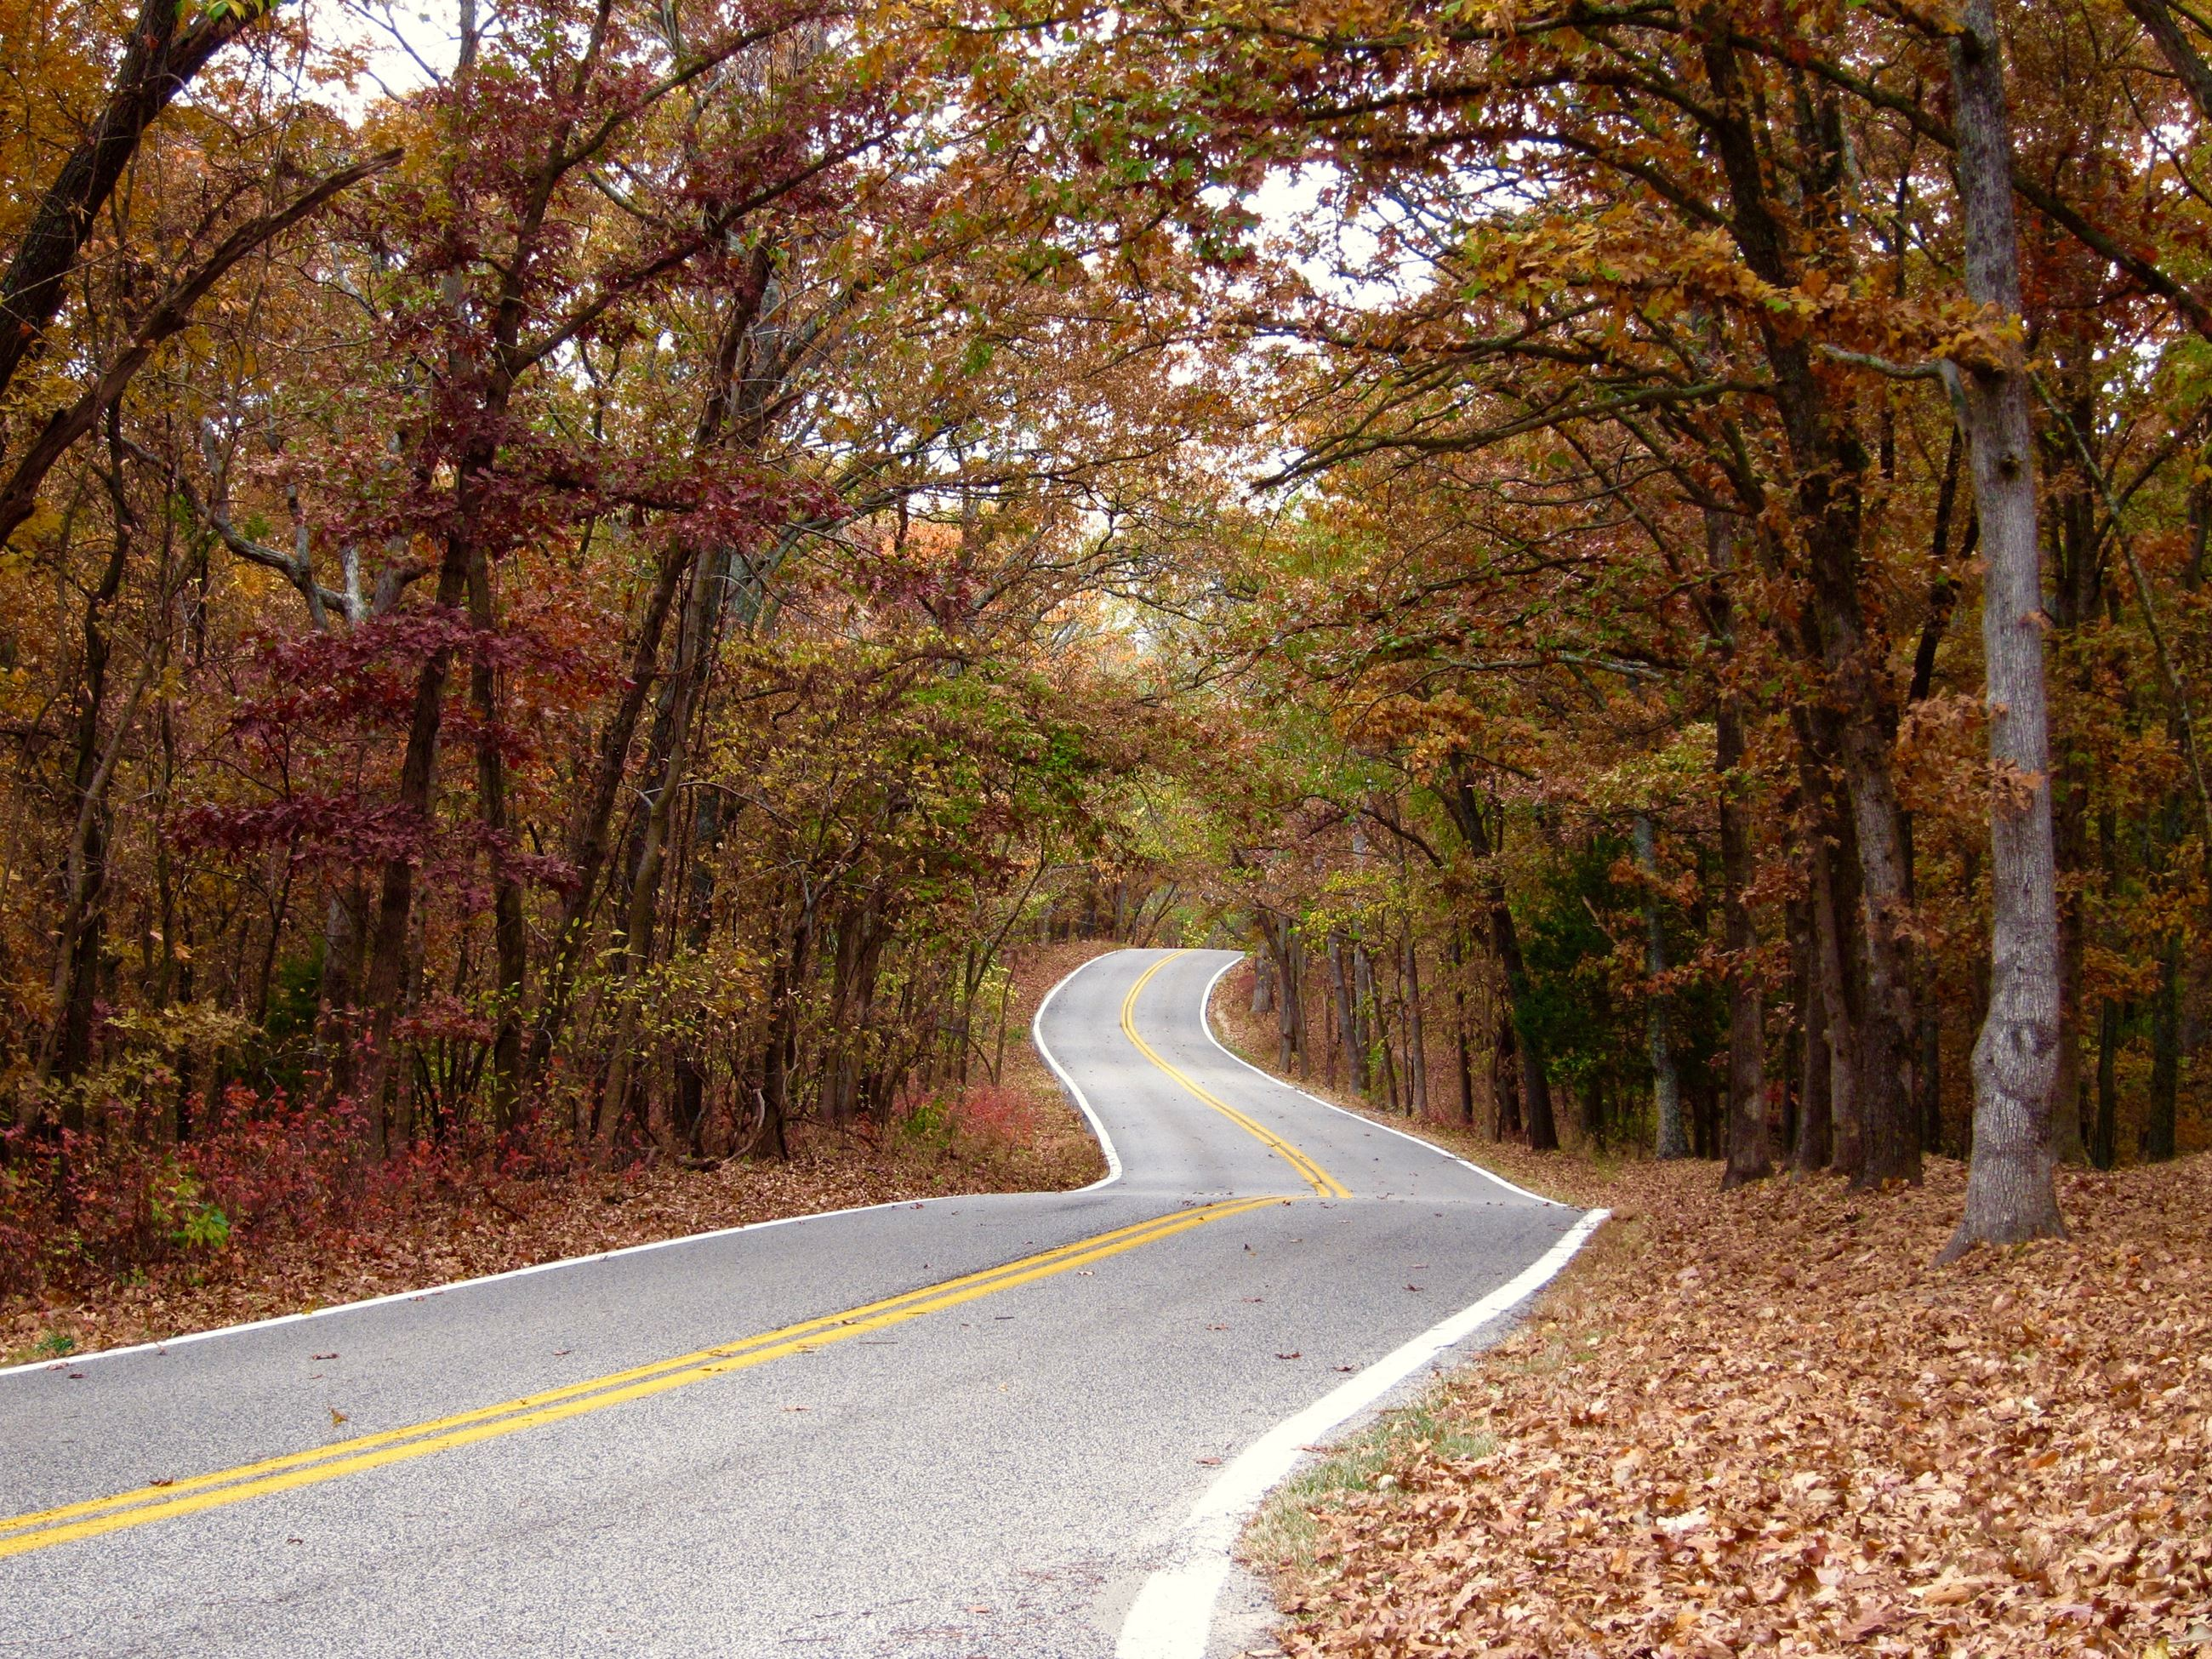 November 2017 Calendar image 2-lane road through fall colored trees